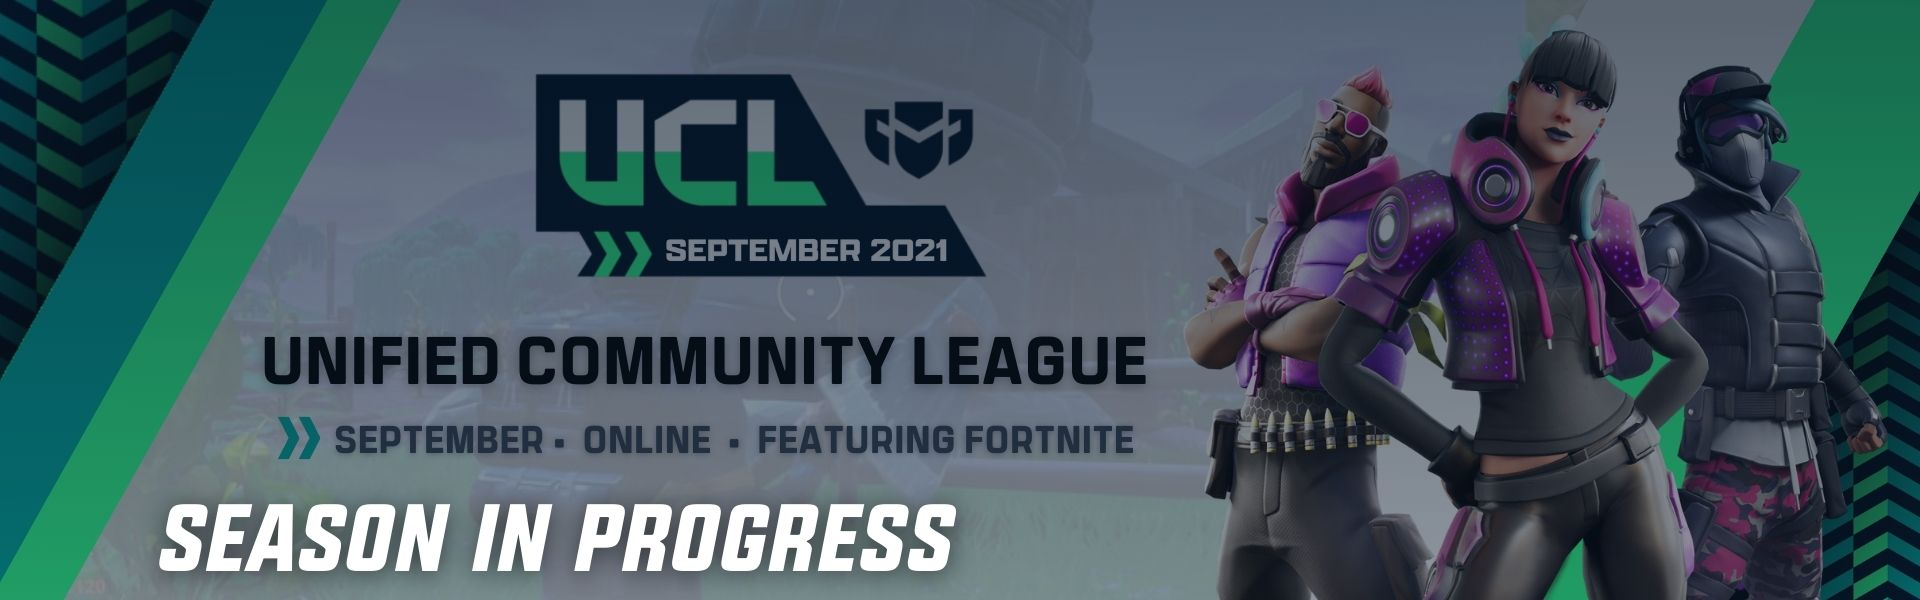 September UCL: Featuring Fortnite